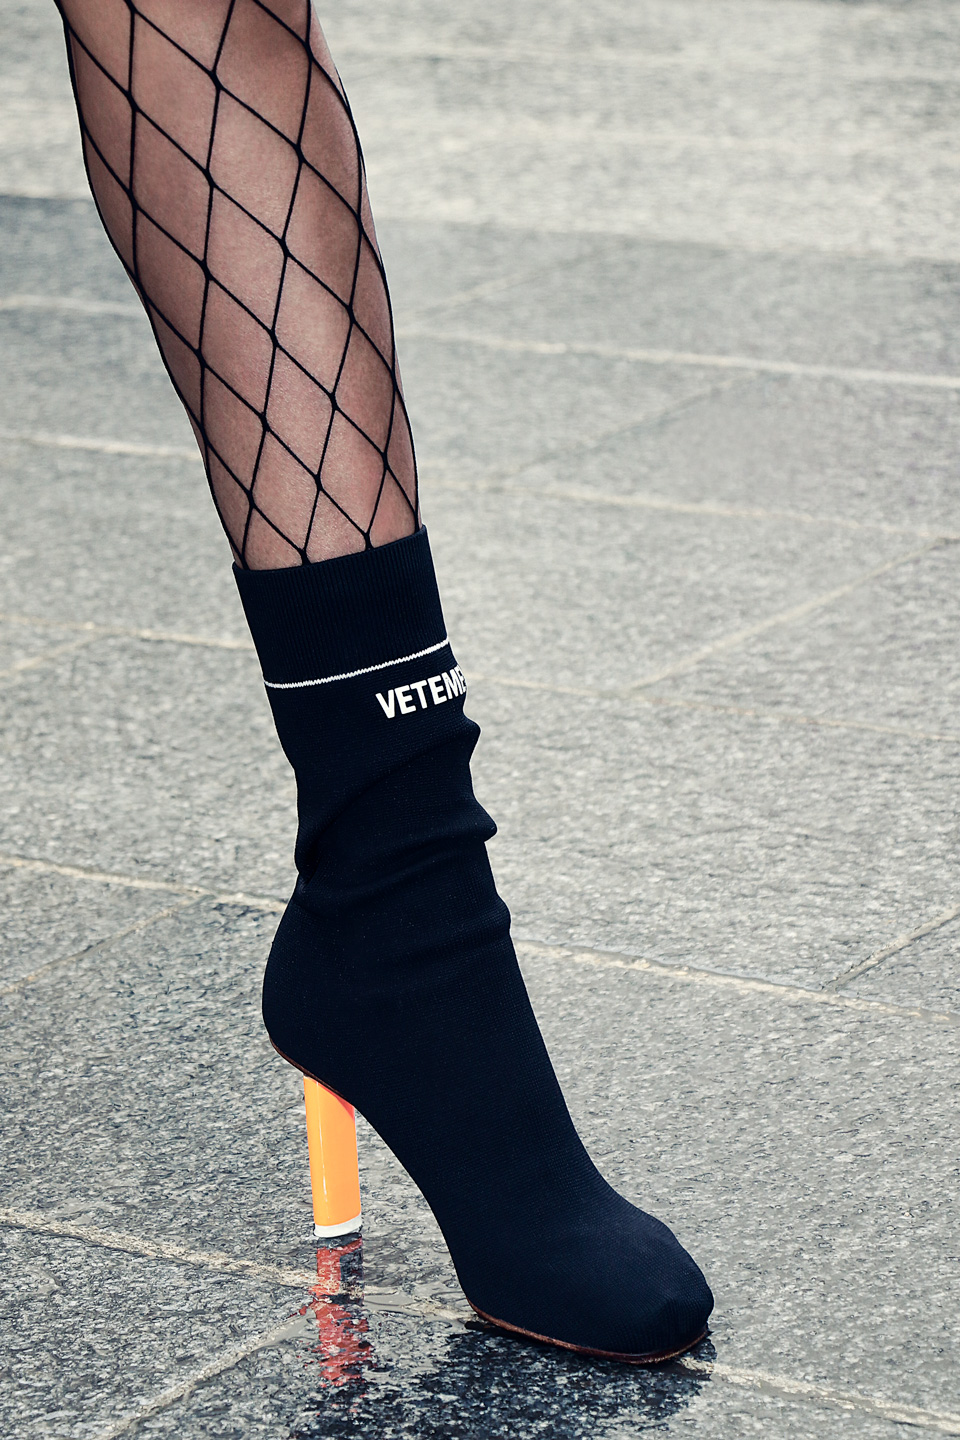 French Photographer Fashion Photography Vetements's Sock Ankle Boots